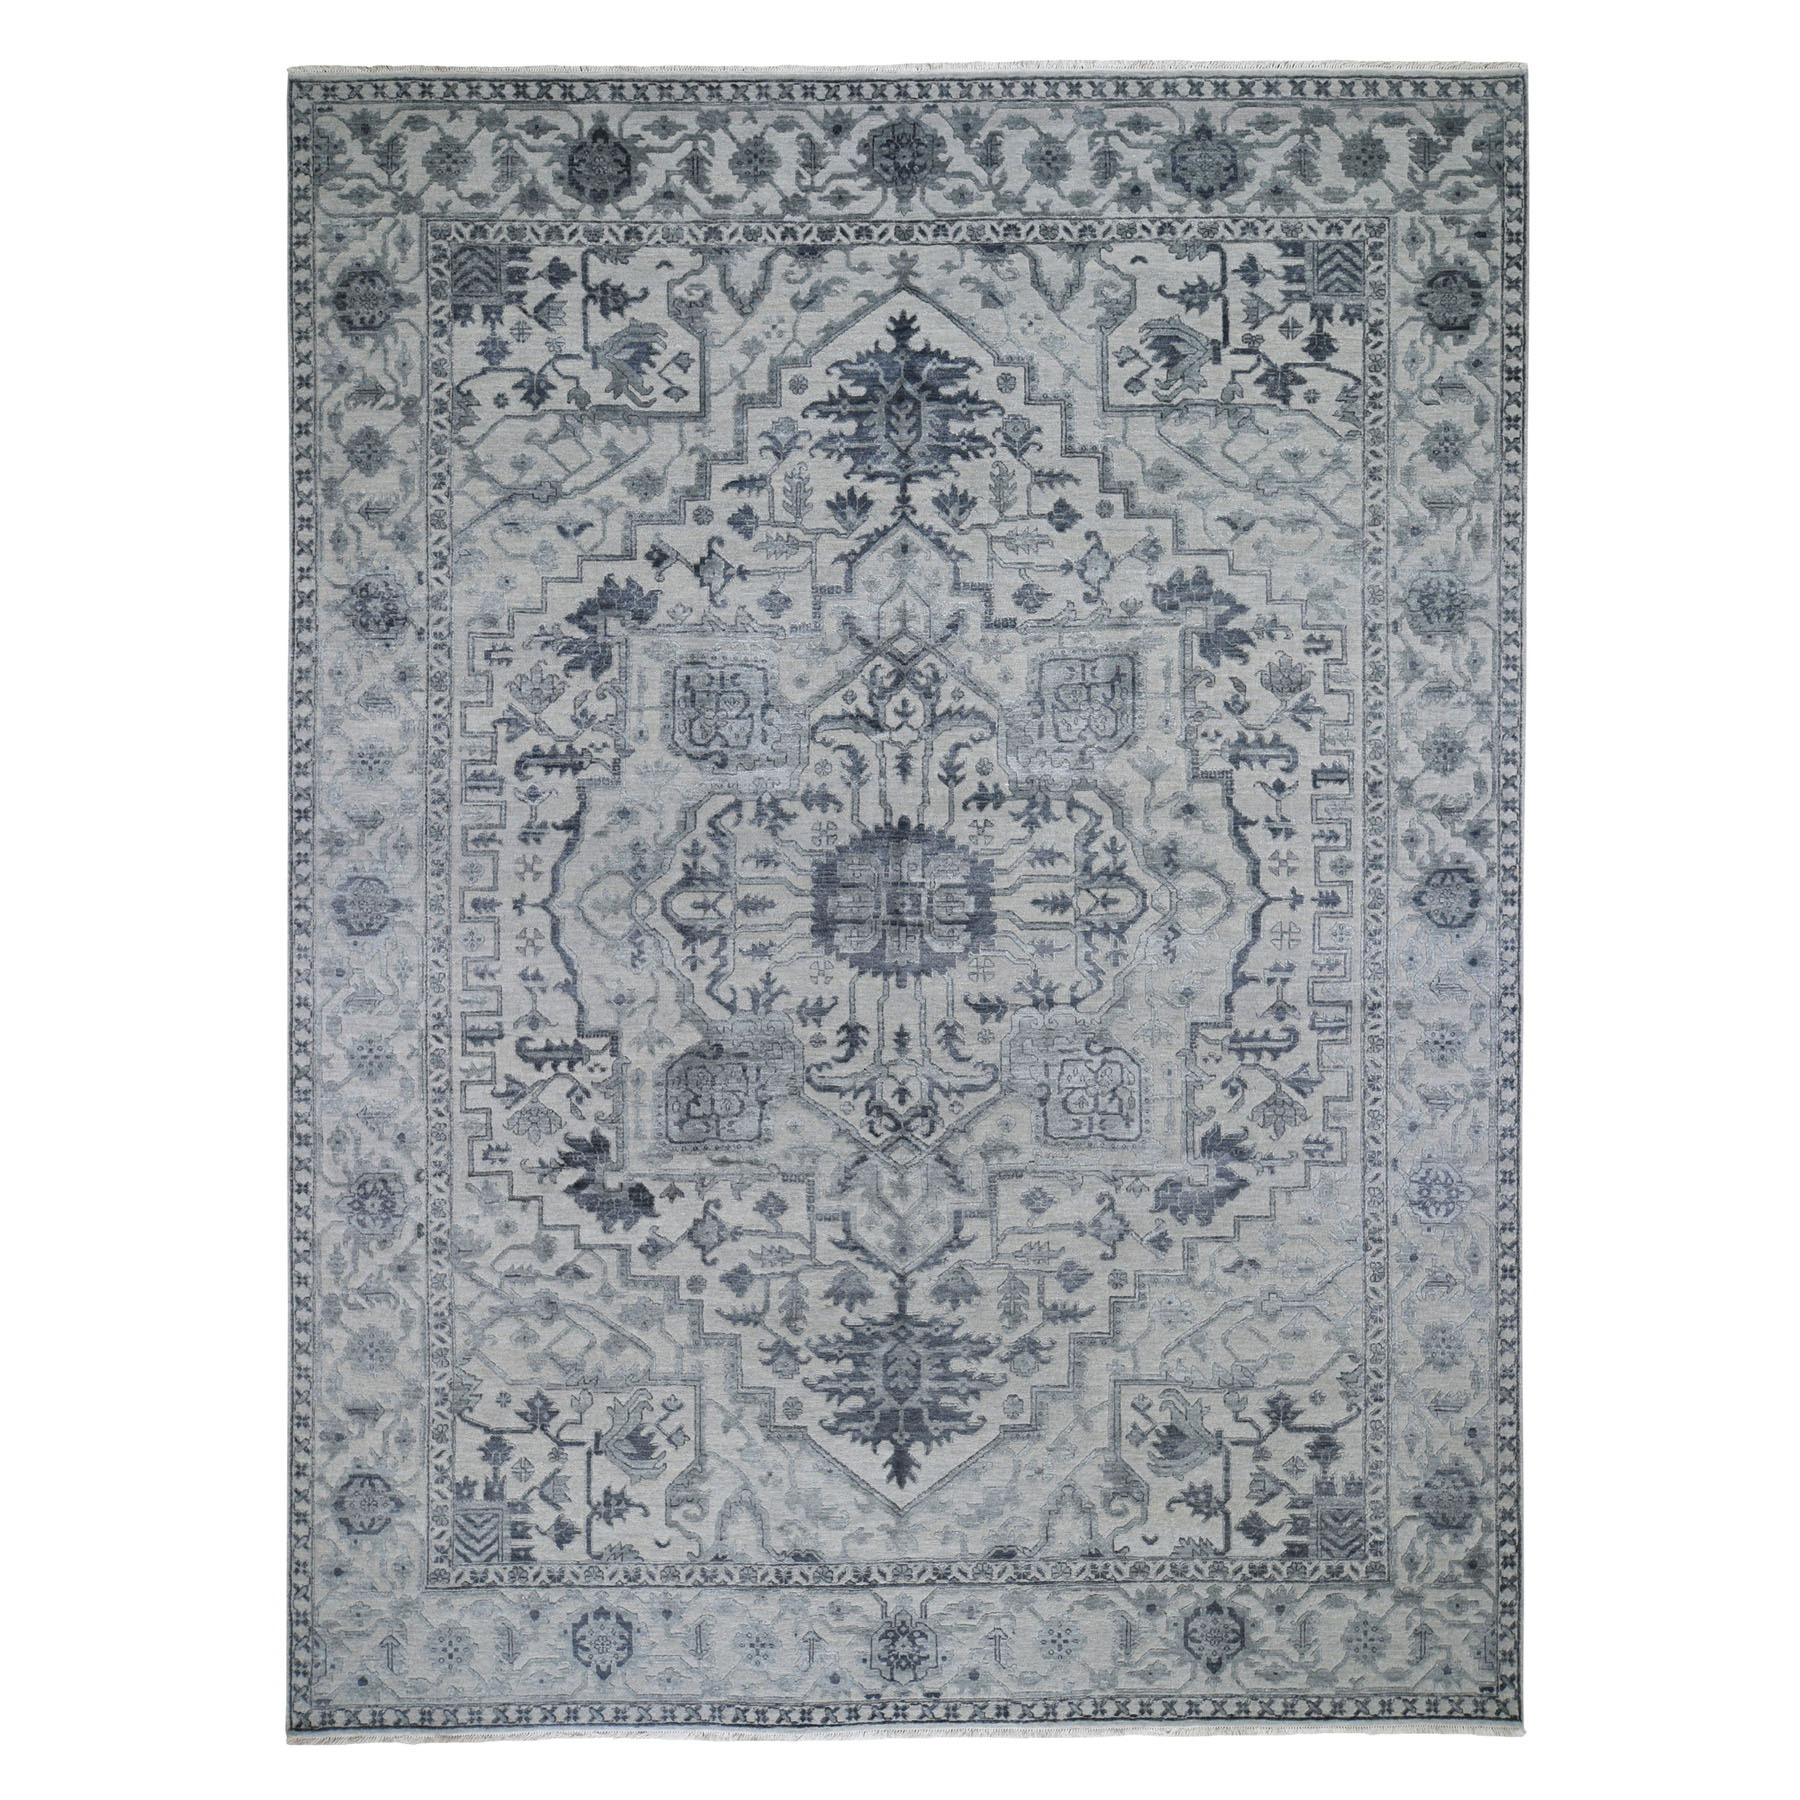 9'X12' Wool And Silk Heriz Design Grey Hand Knotted Oriental Rug moad7dc8